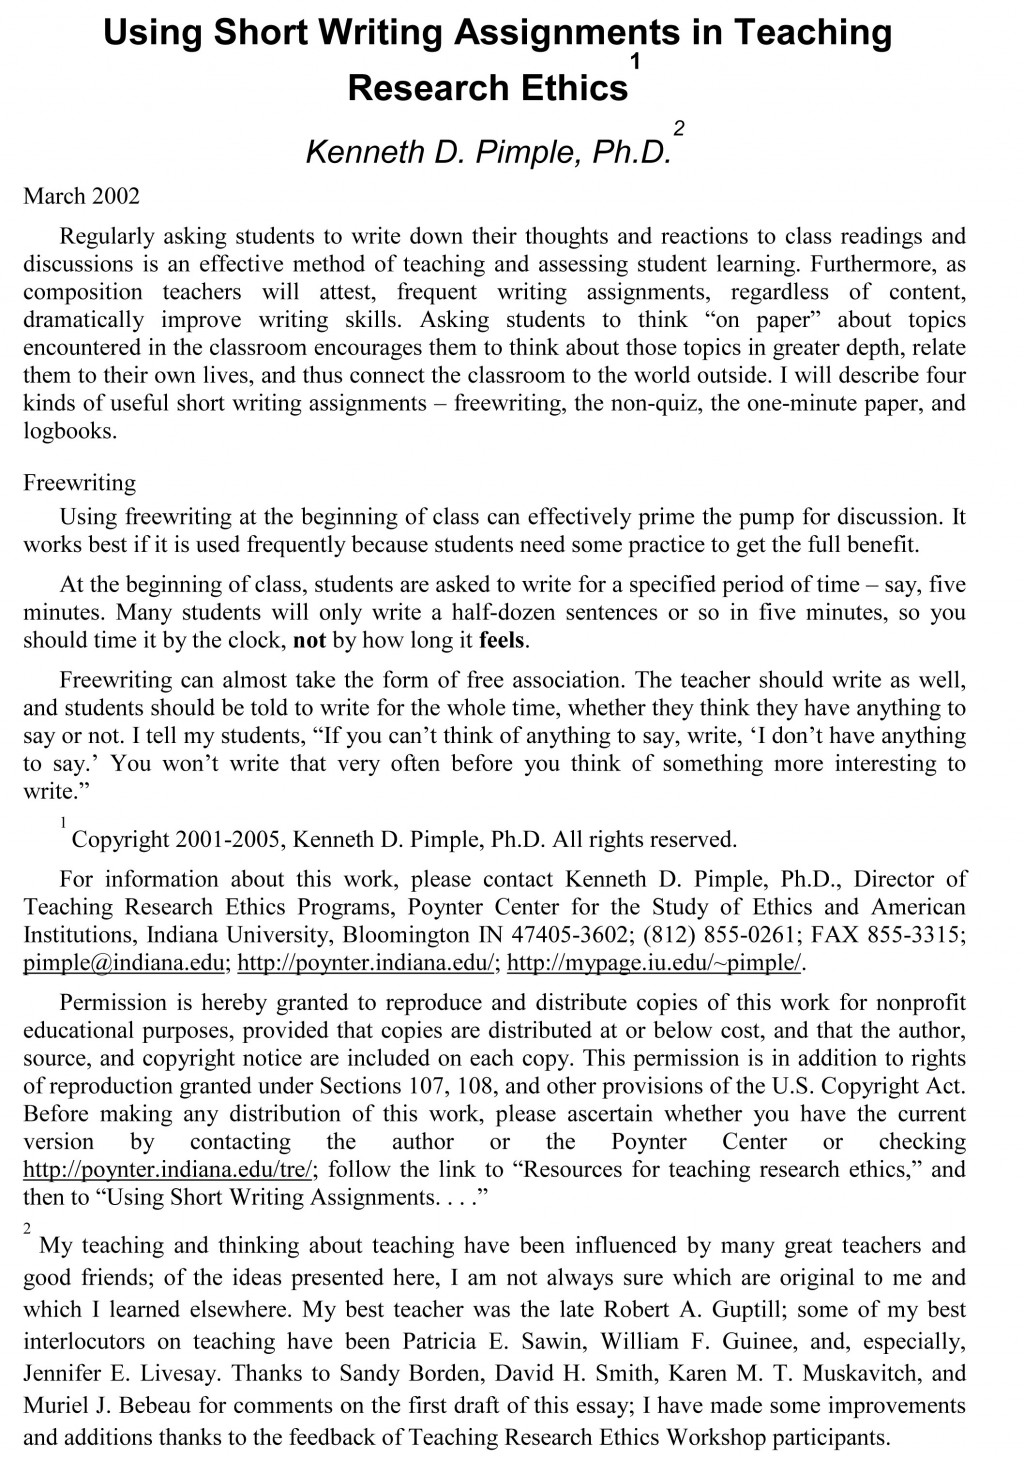 008 Essay Example Sample Teaching College Essays About Exceptional Music Country Rock Large